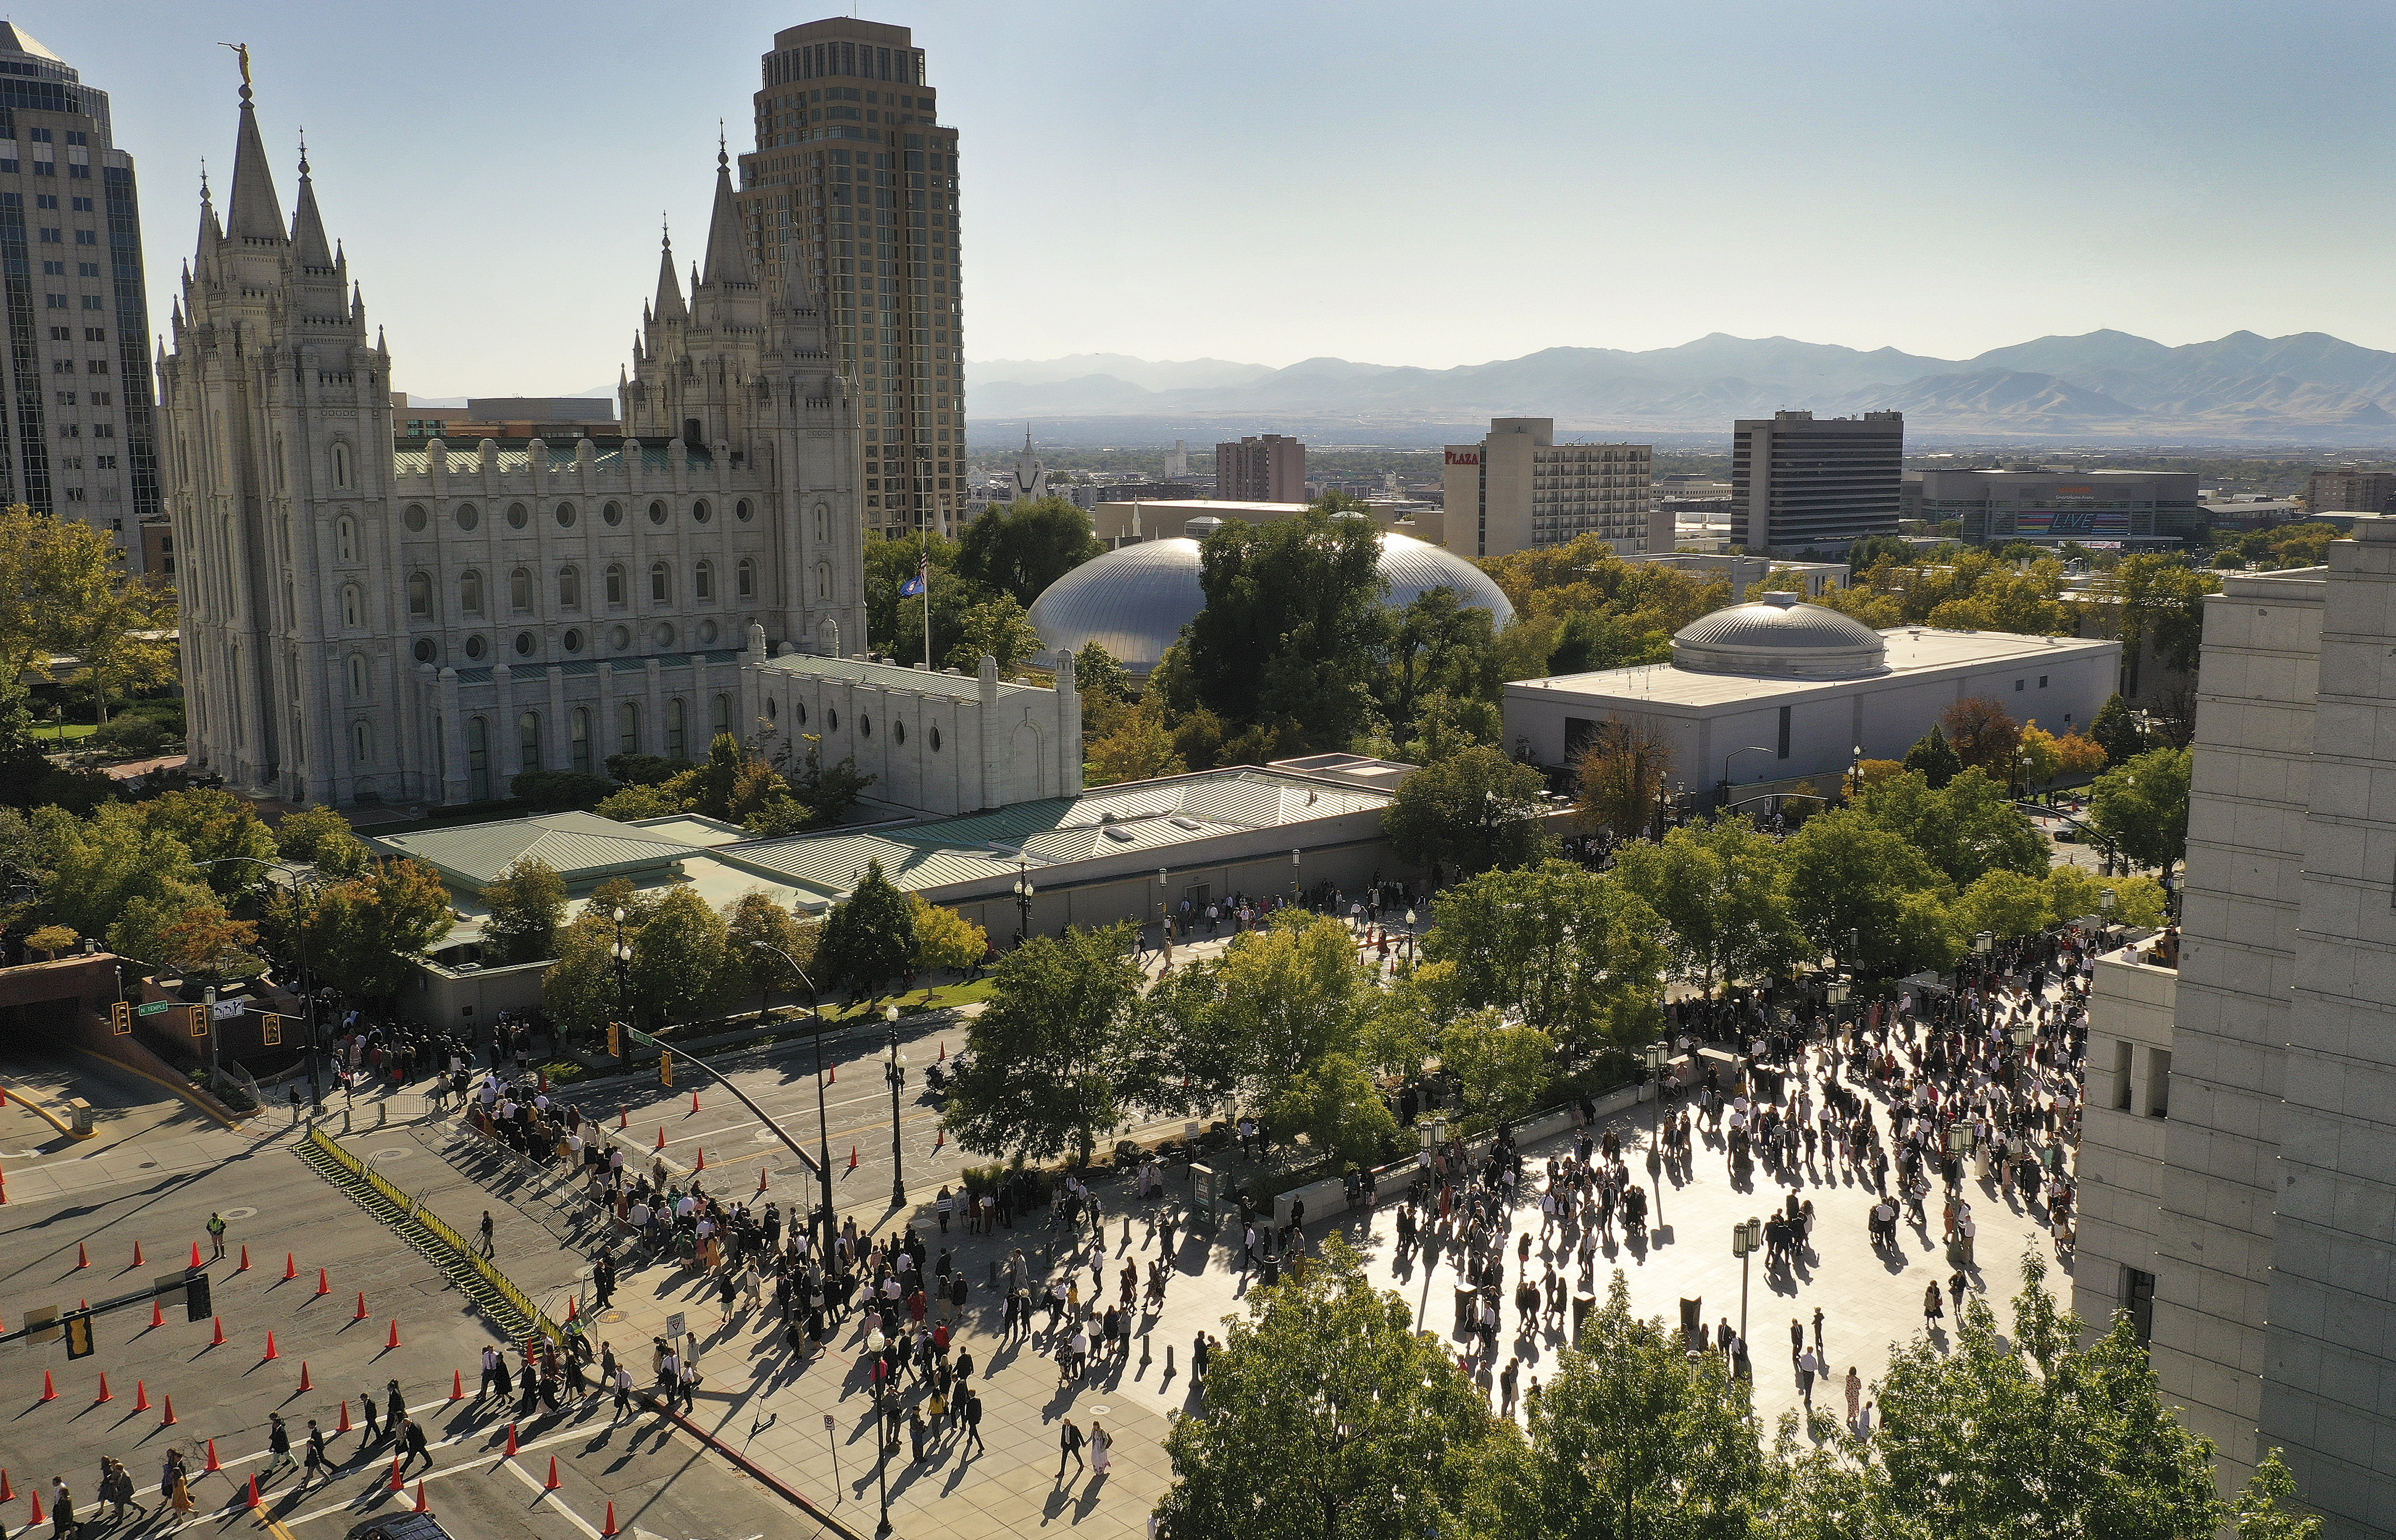 Attendees leave the 189th Semiannual General Conference of The Church of Jesus Christ of Latter-day Saints in Salt Lake City on Sunday, Oct. 6, 2019.